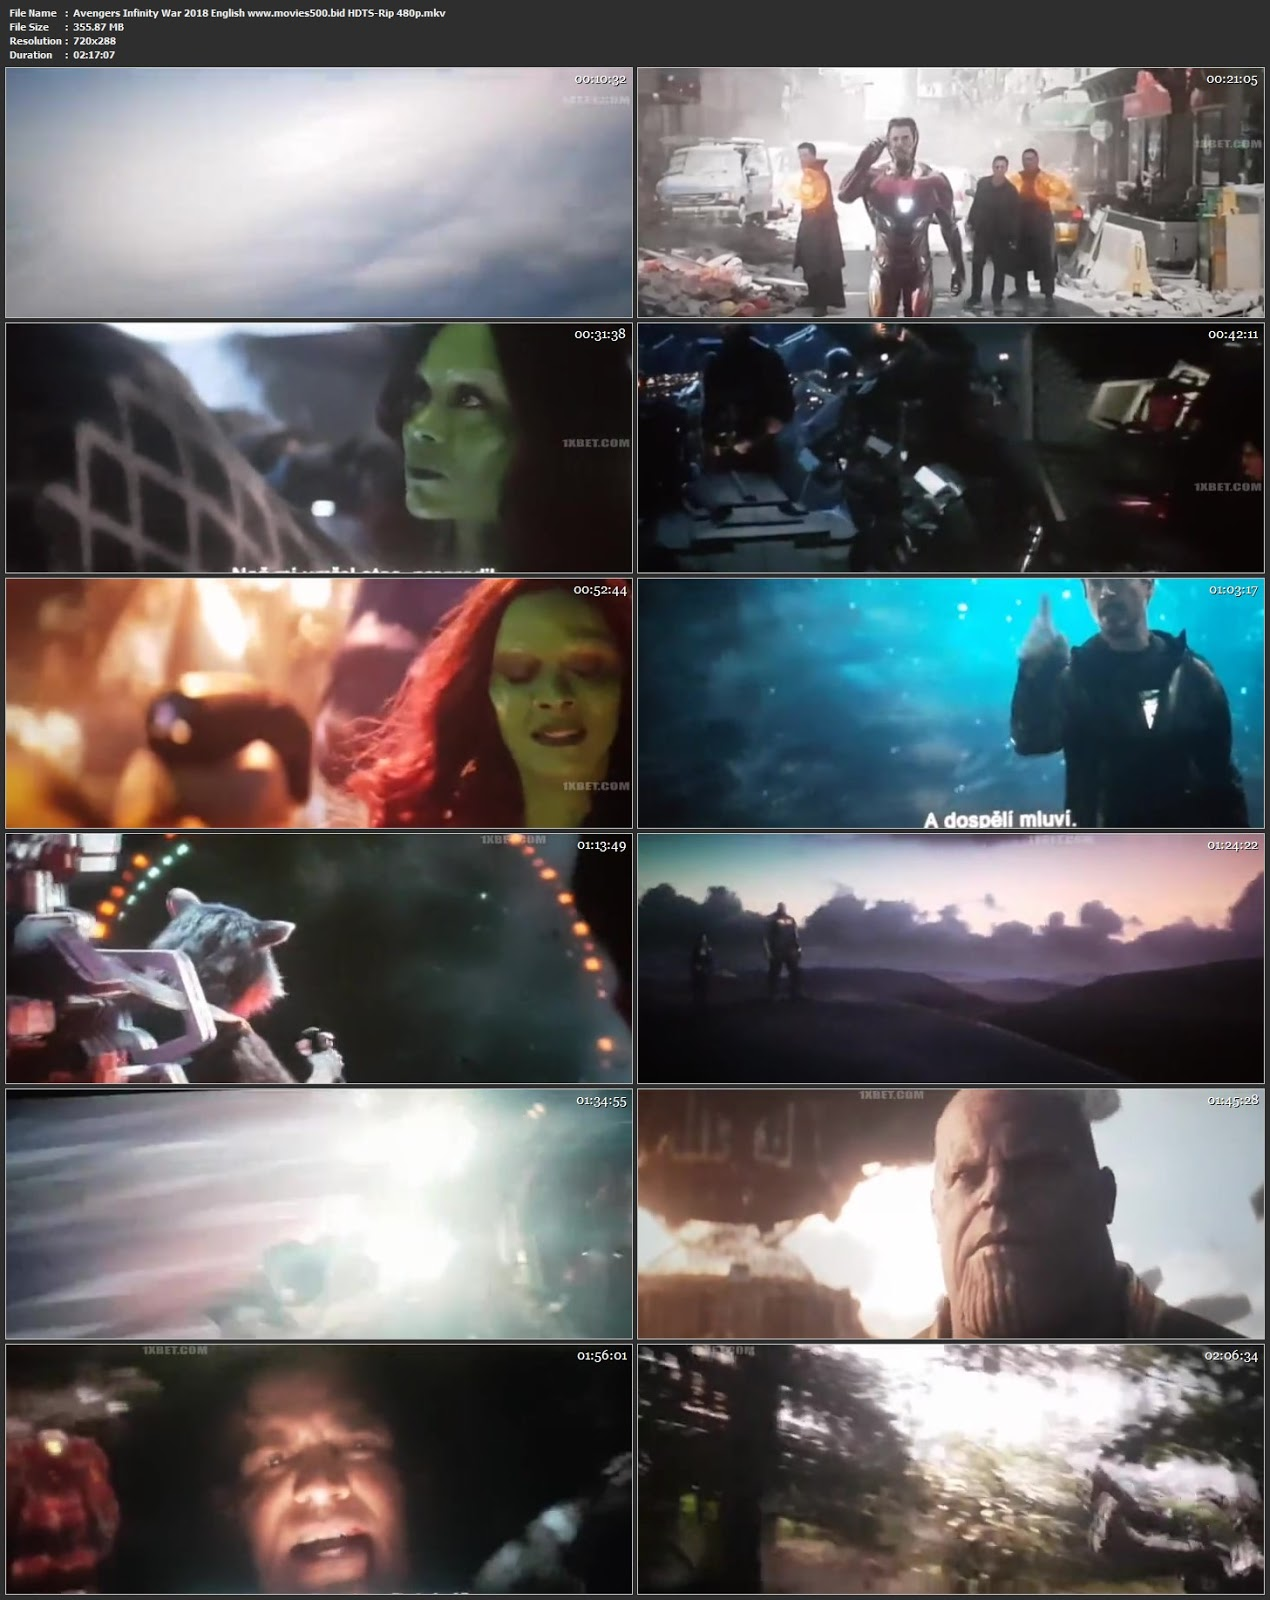 Avengers Infinity War 2018 Hollywood 300MB HDTSRip 480p at 9966132.com